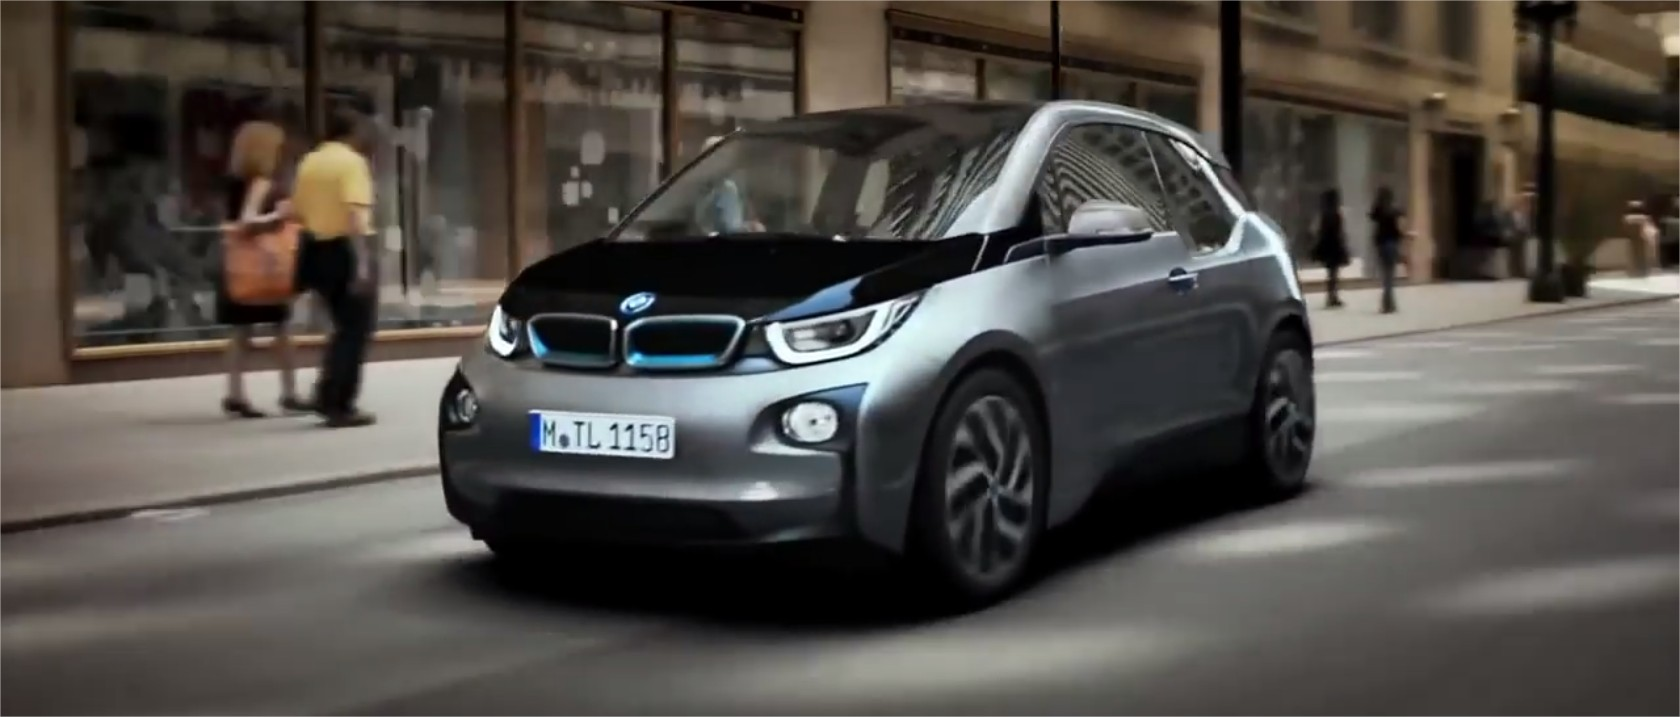 musique de pub nouvelle bmw i3 2014 musique. Black Bedroom Furniture Sets. Home Design Ideas